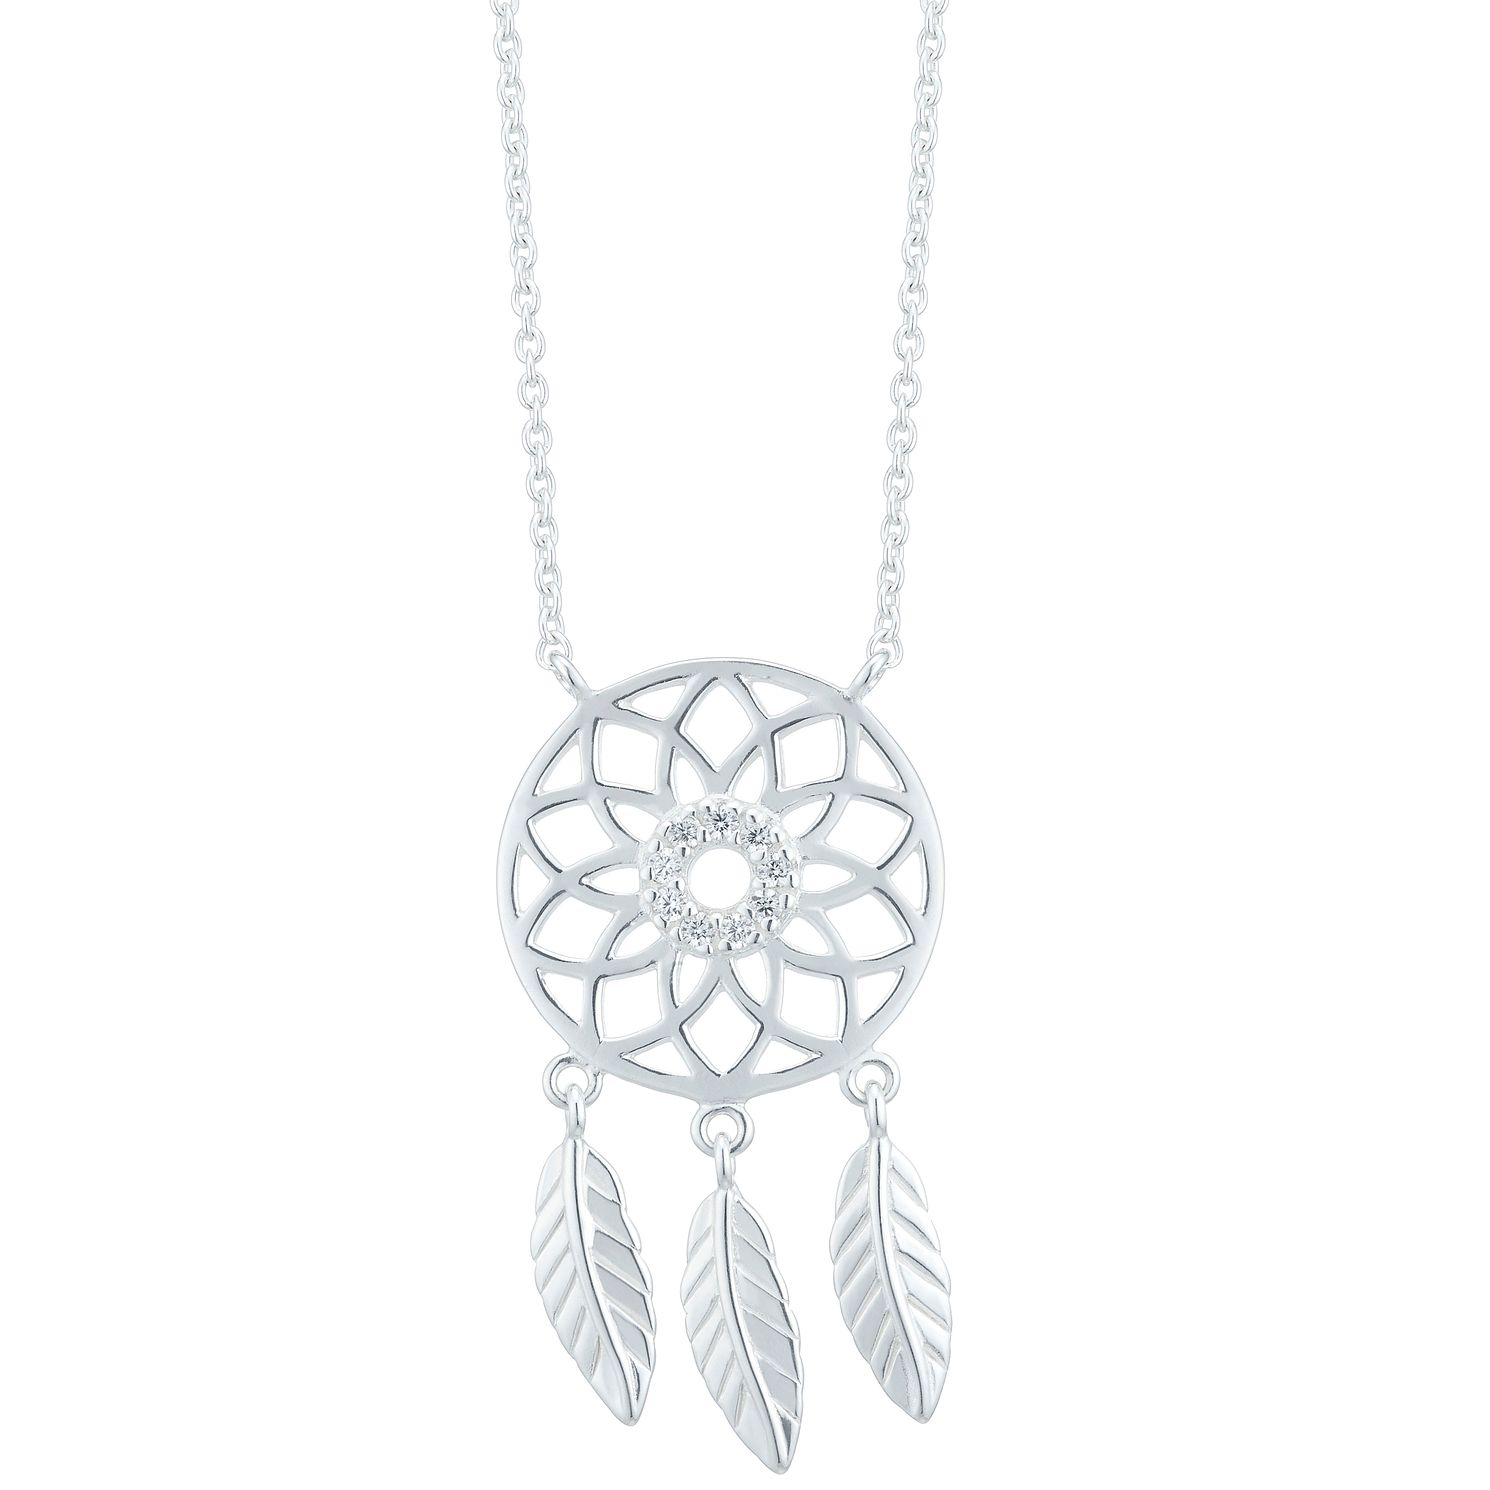 Sterling Silver Cubic Zirconia Dreamcatcher Necklace - Product number 3959686